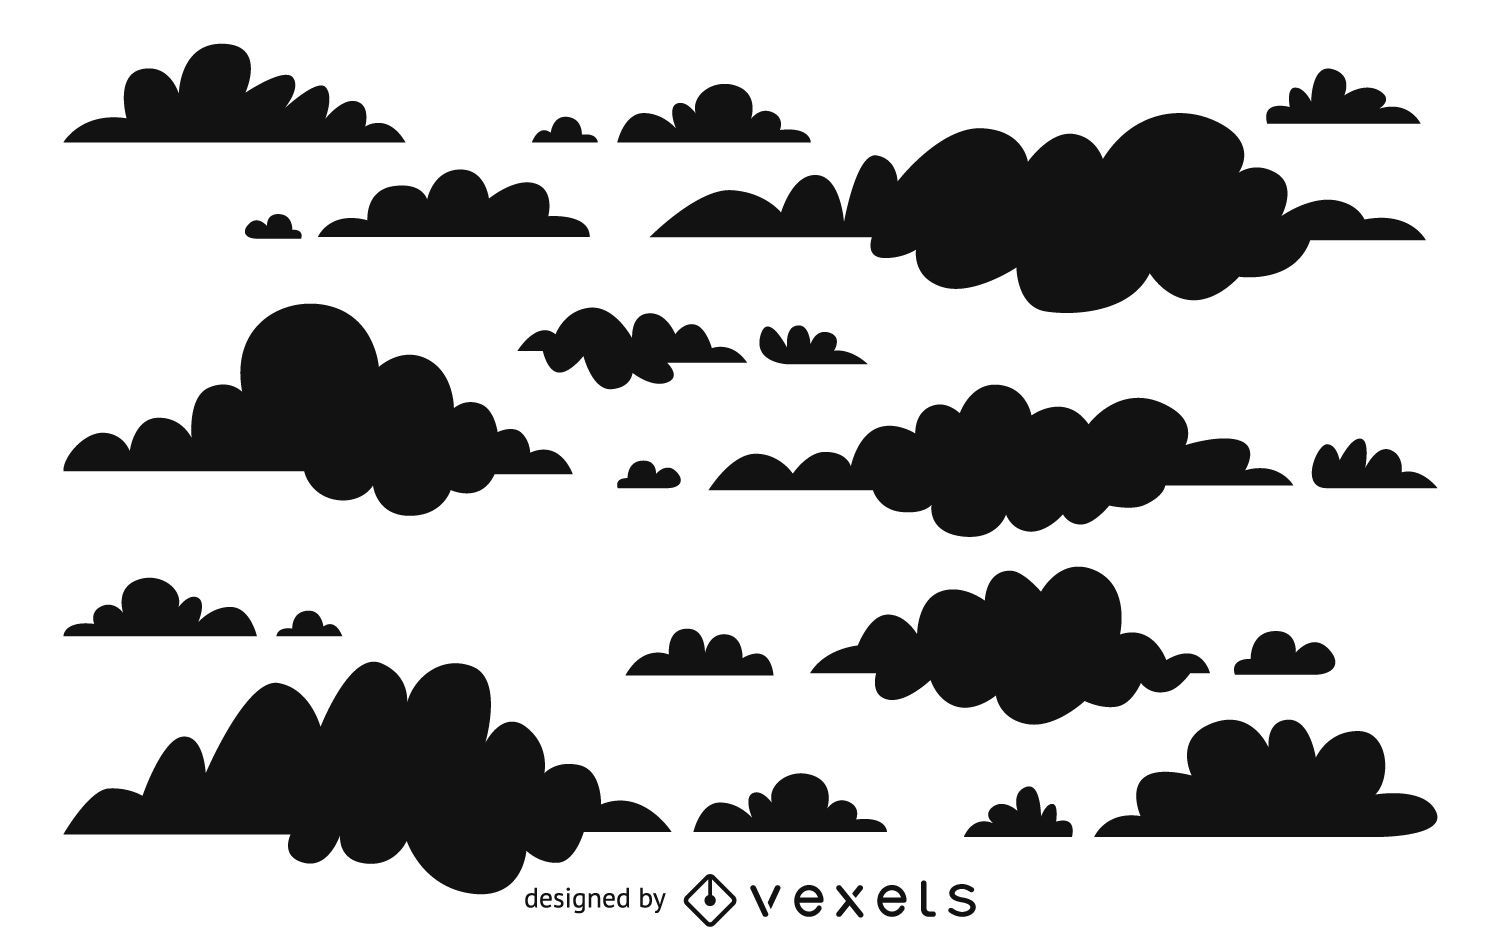 Cloud silhouettes background design